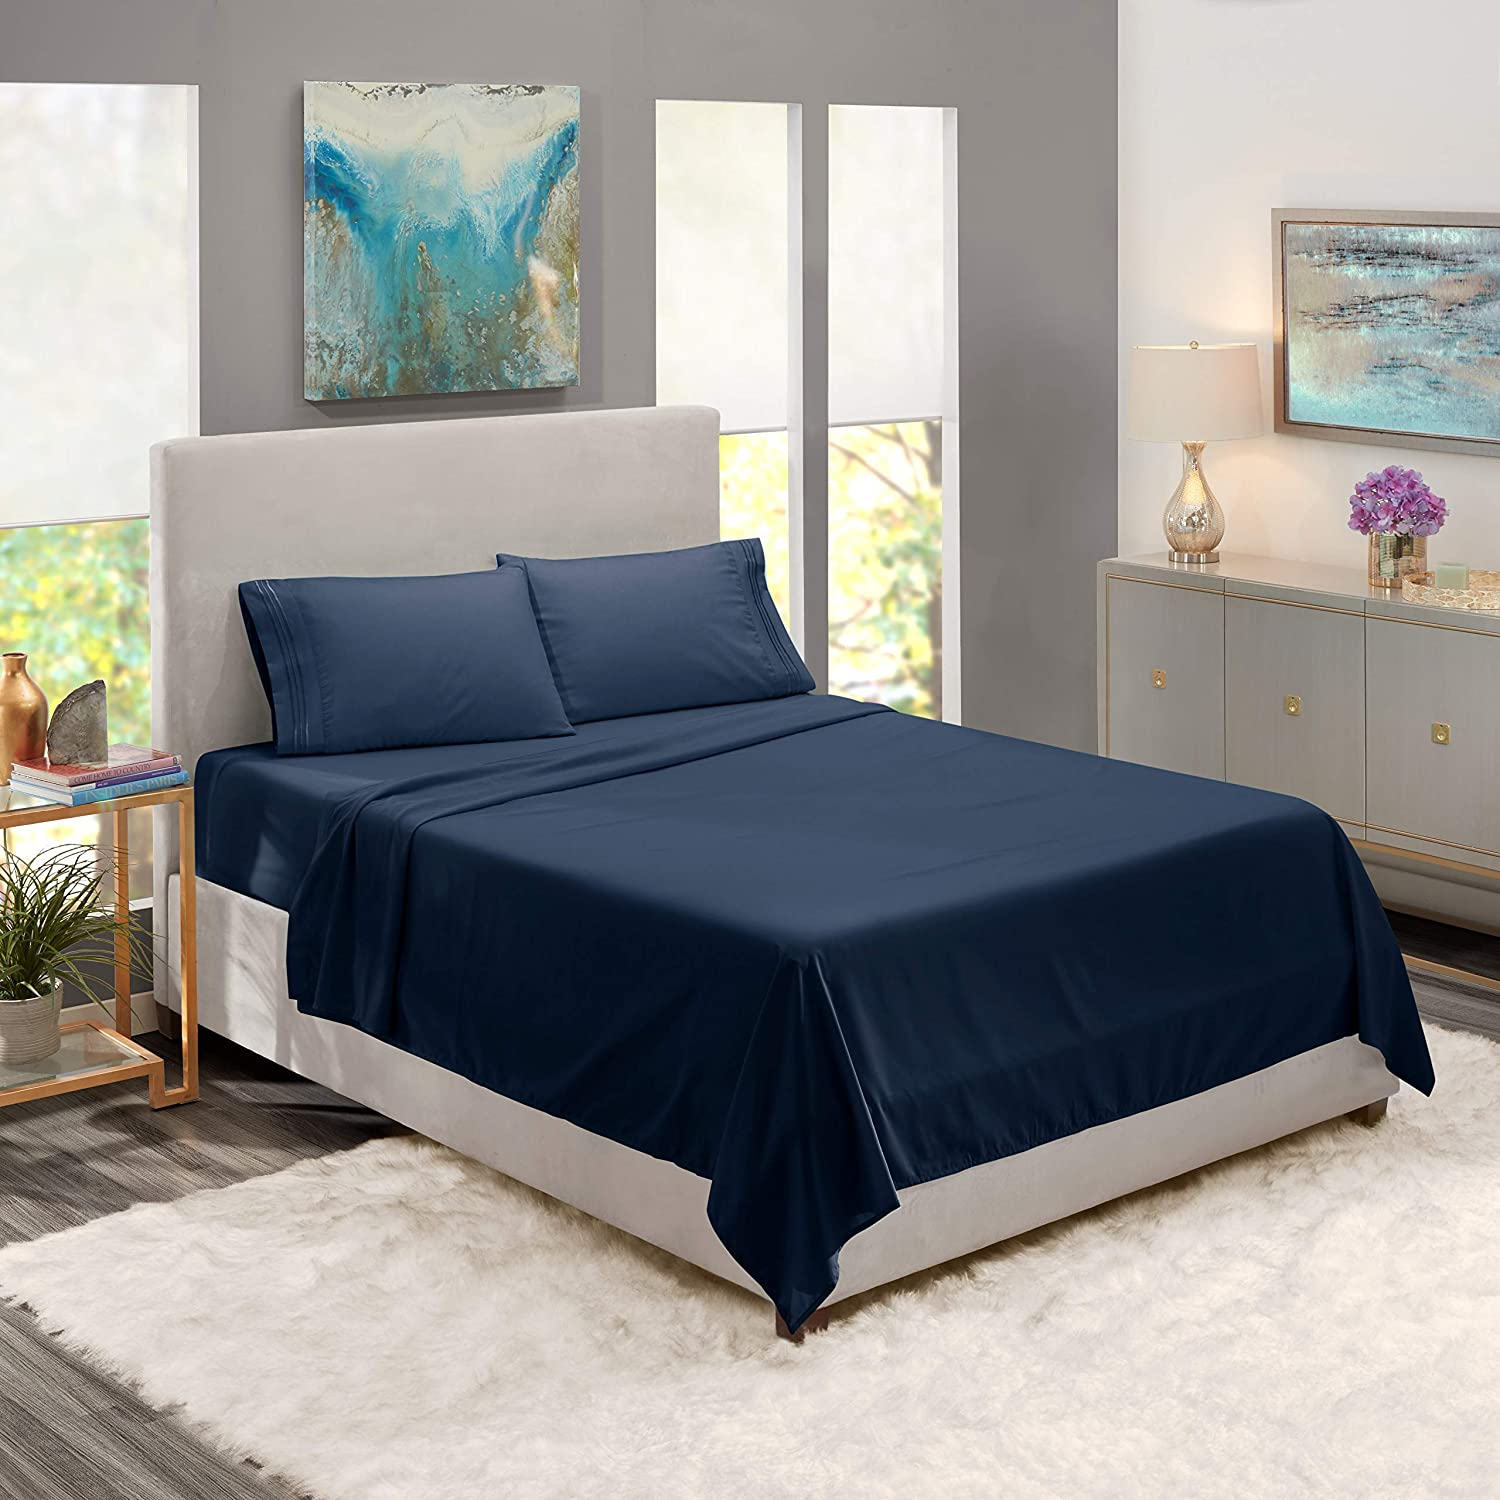 1 Piece Solid Flat Sheet Smooth Touch Hotel Quality 100/% Cotton Perfectly Fit for Oversize and Extra Height Twin Bed 66X96 Inch Aqua Blue 800 Thread Count Sateen Weave Bedding Flat Sheet Only